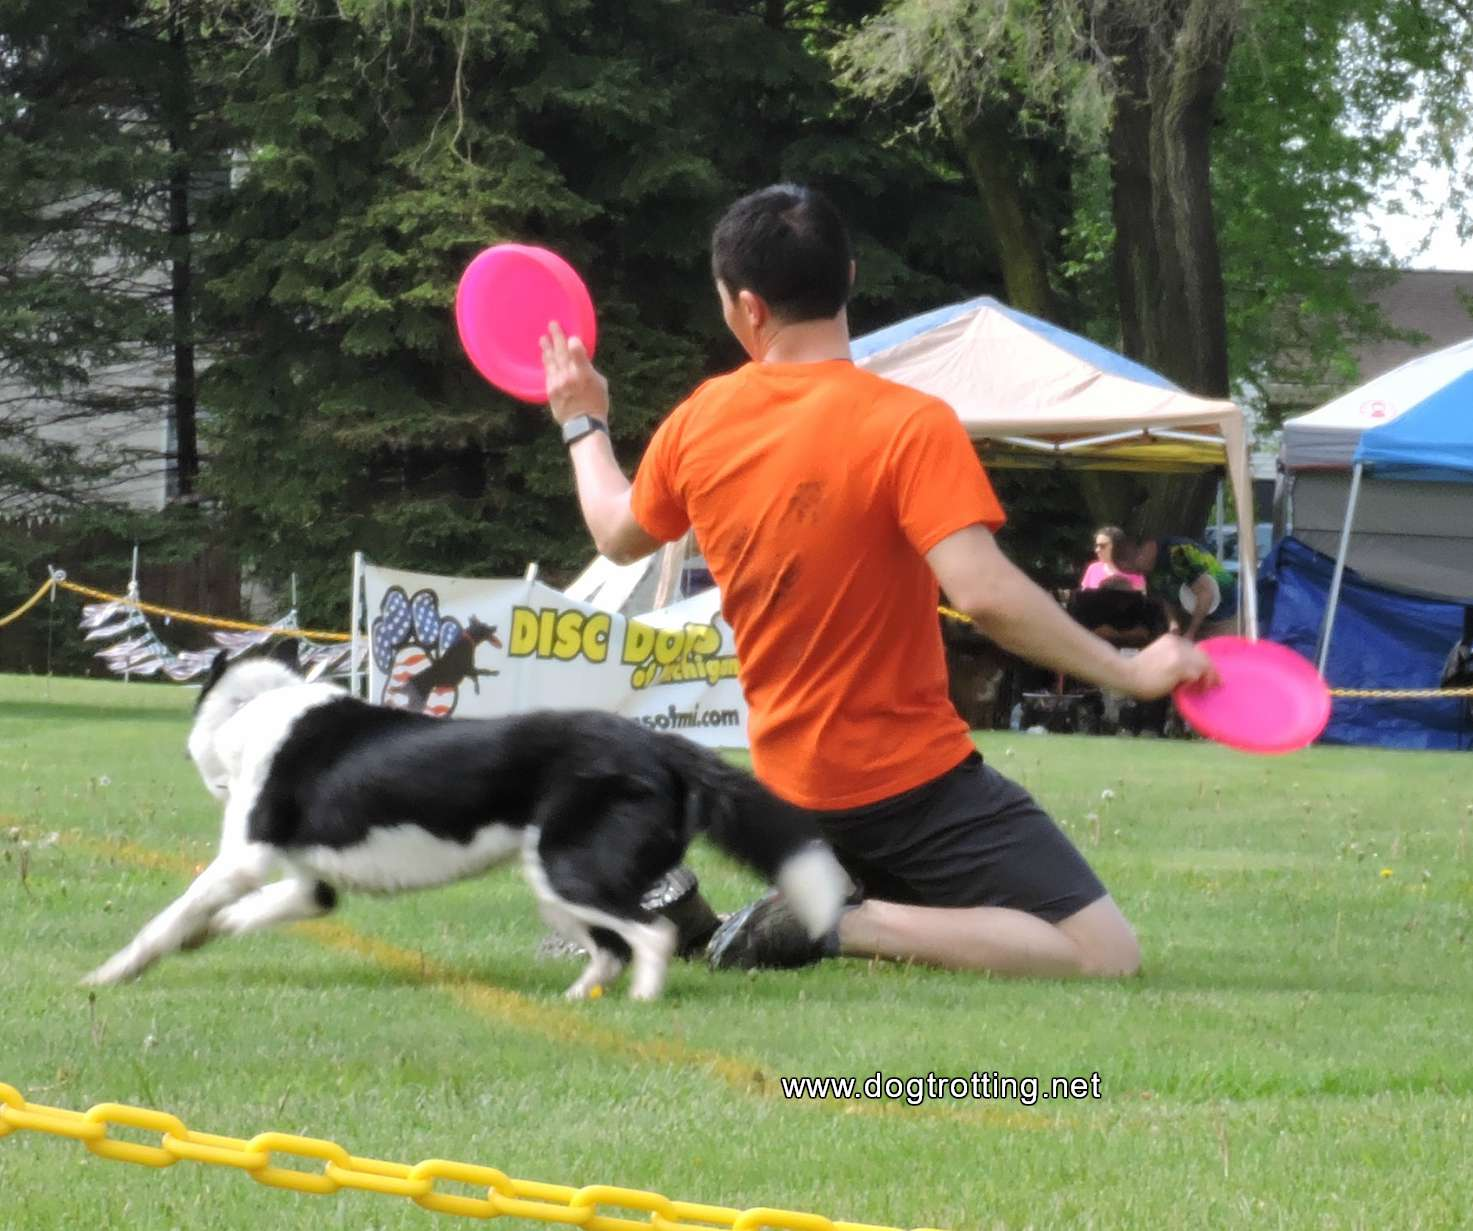 Disc Dogs at Dog Bowl 2019